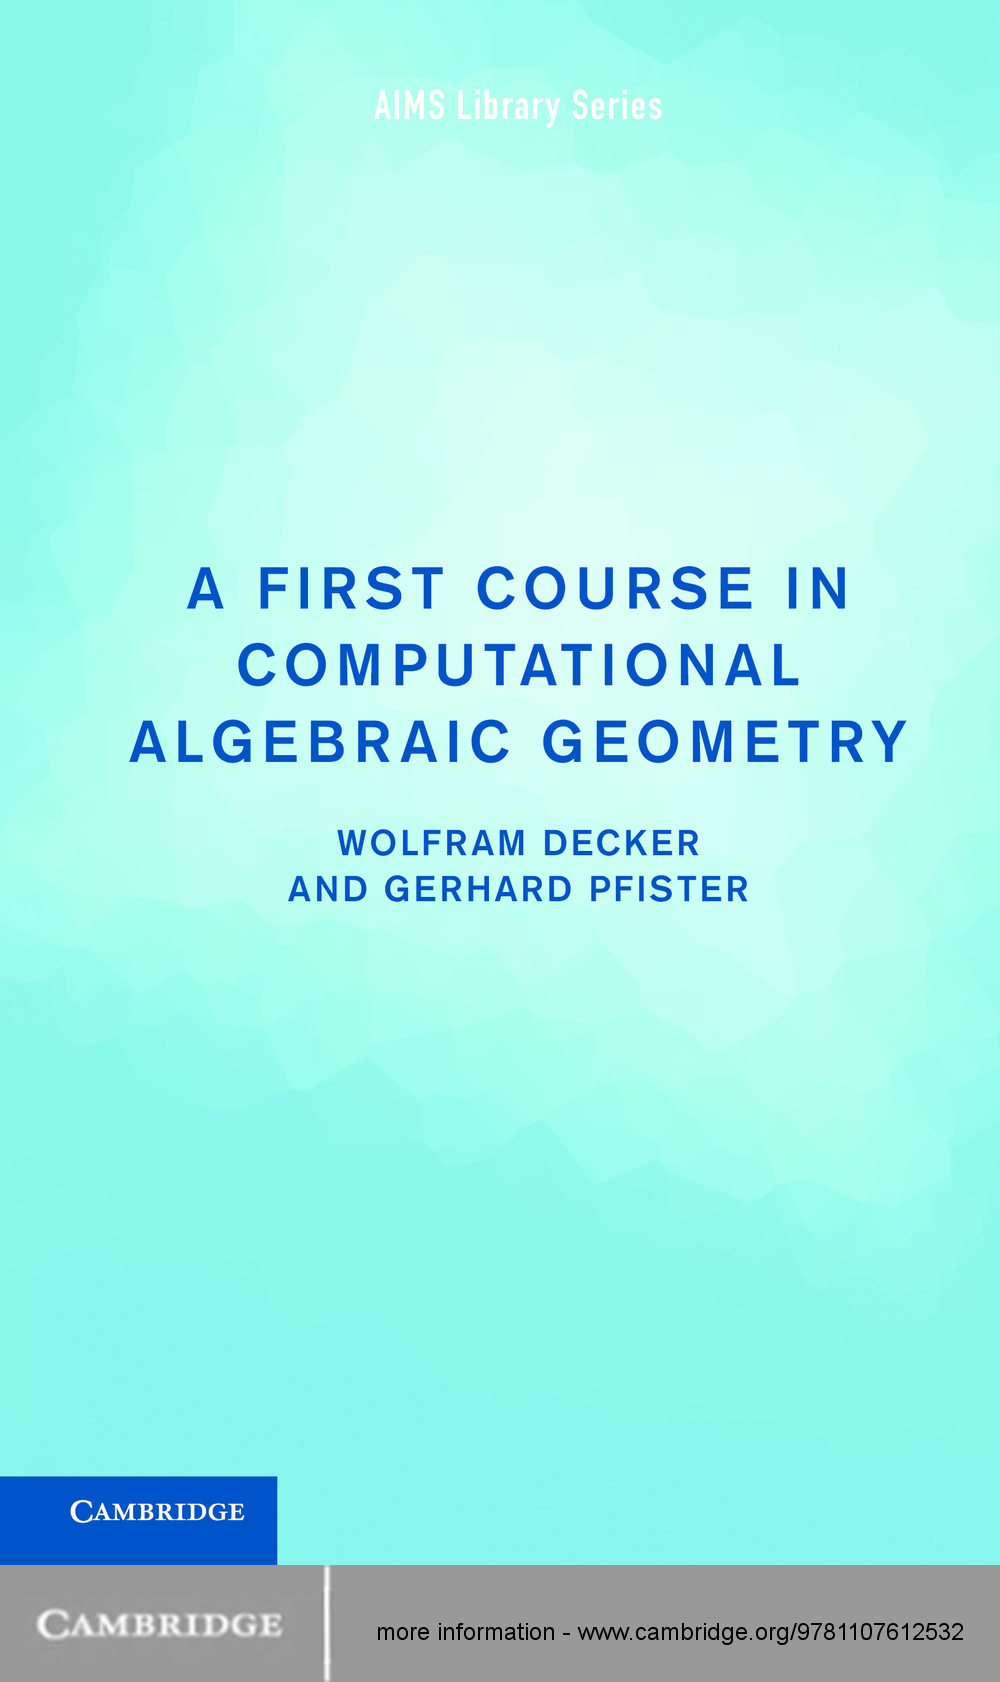 A First Course in Computational Algebraic Geometry